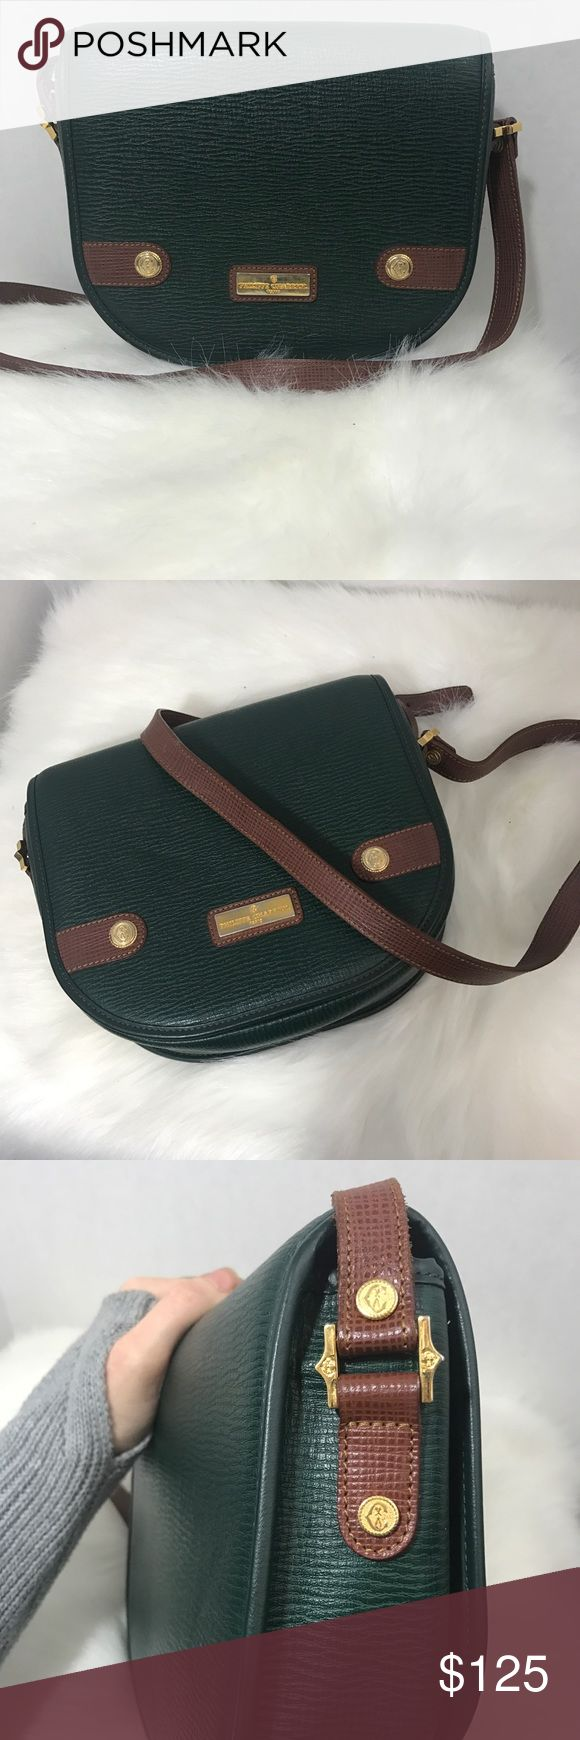 Vintage Philippe Charriol bag Leather cross body bag made in France. Is in great vintage condition. Slight tarnish on gold hardware and tear on inside liner. Leather is in perfect condition. philippe Charriol Bags Crossbody Bags